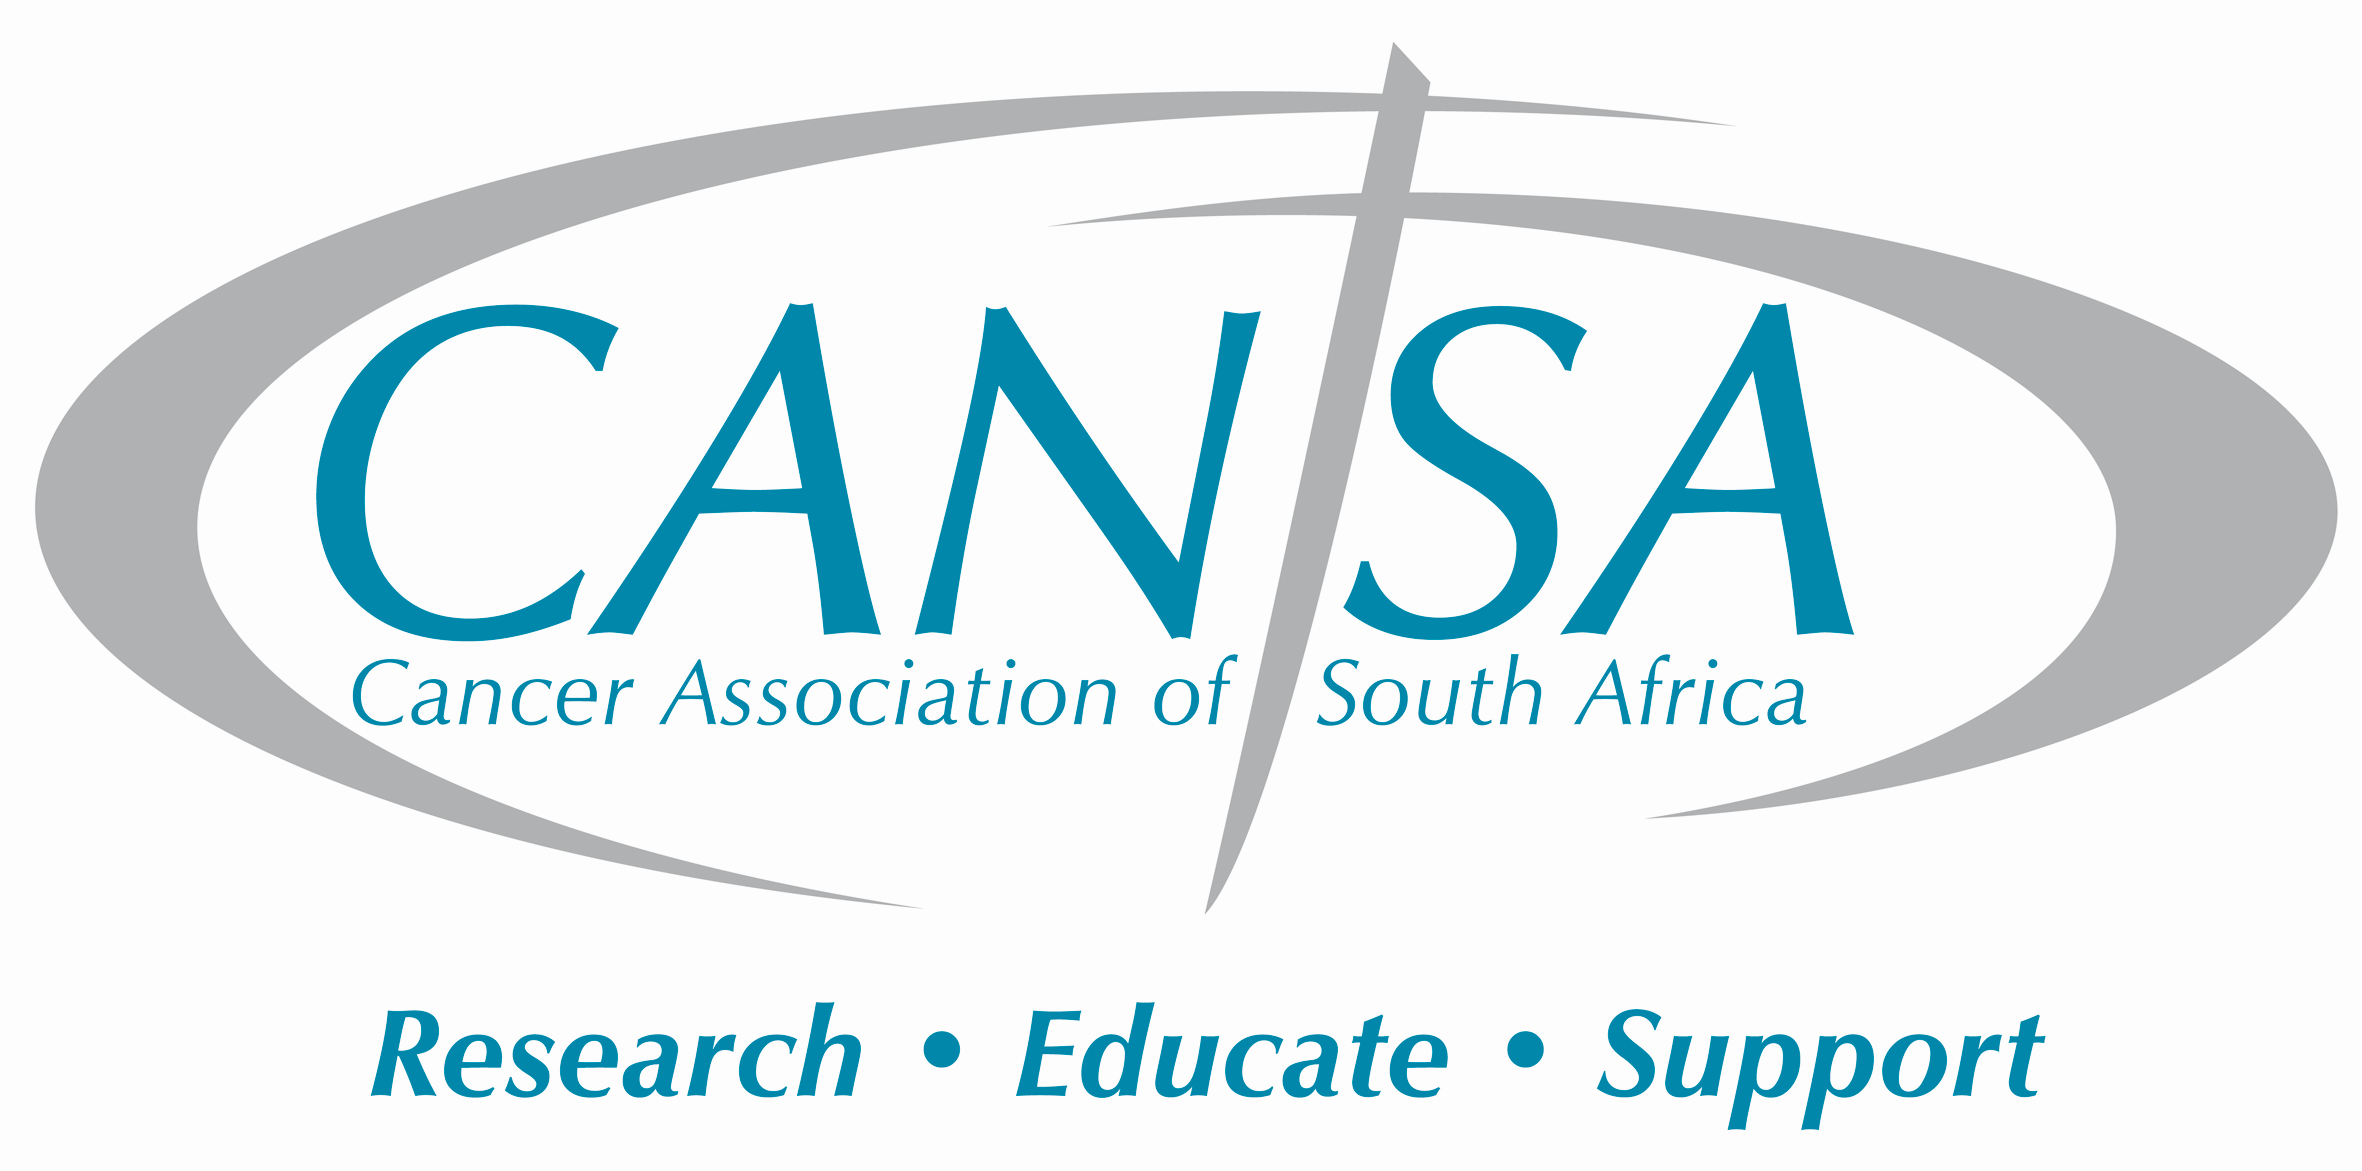 cansa-The-Cancer-Association-of-South-Africa.png